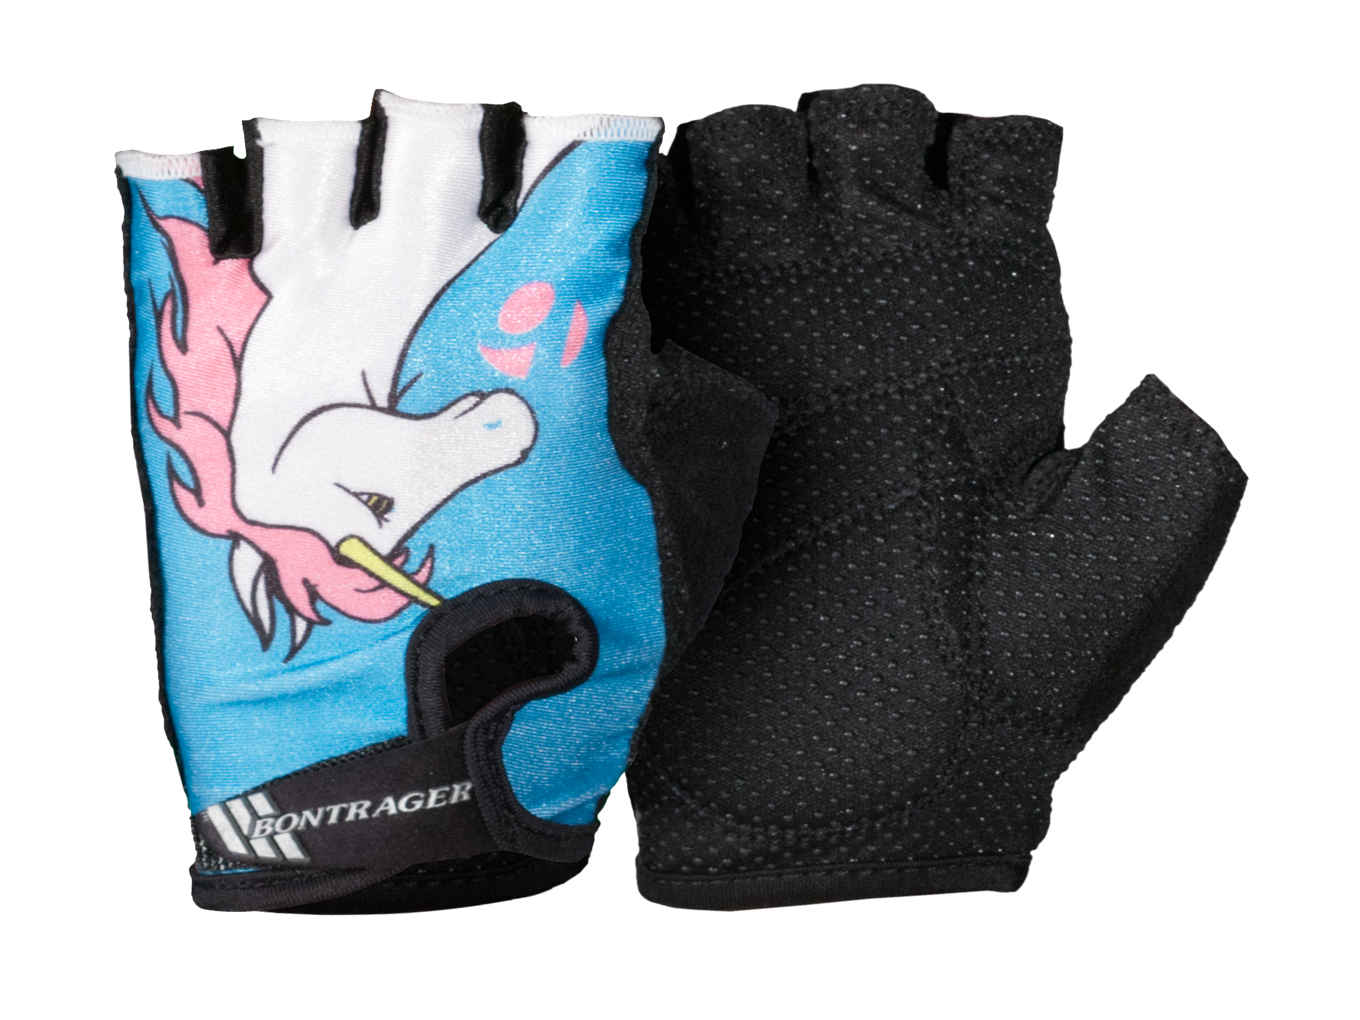 Ladies leather gloves blue - Bontrager Kids Glove